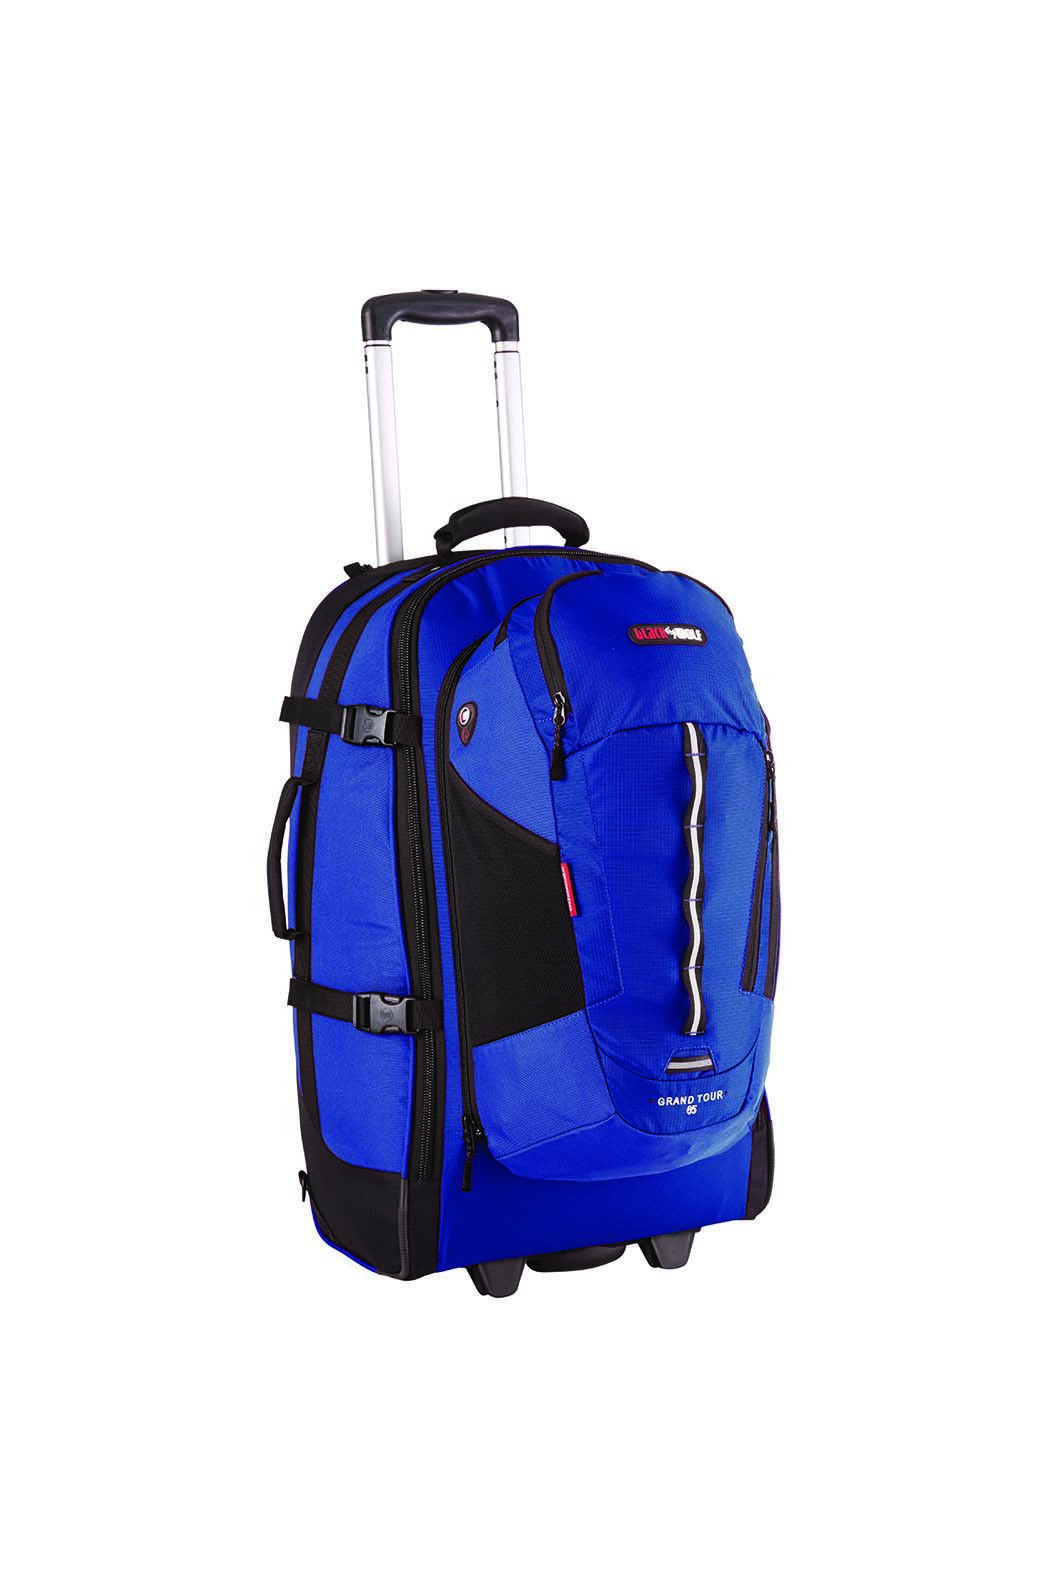 BlackWolf Grand Tour 65L Wheeled Luggage, None, hi-res